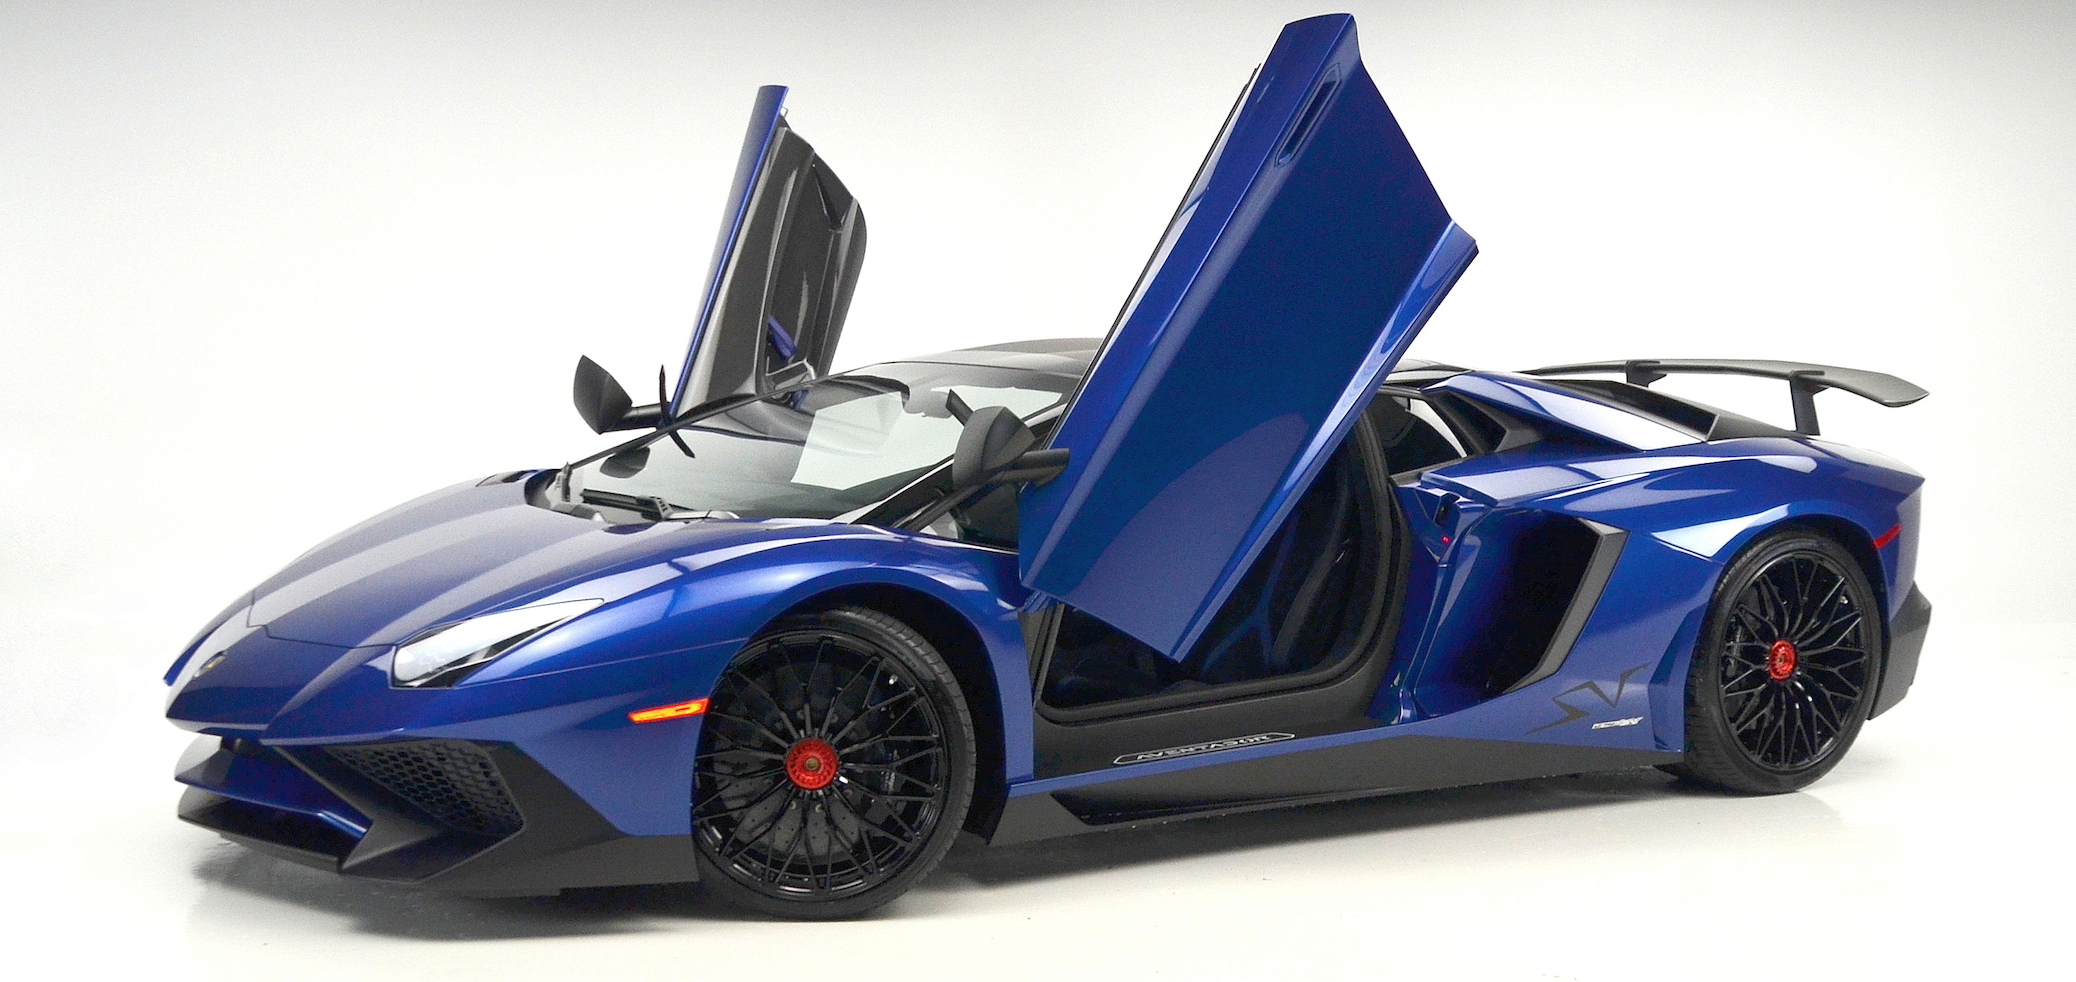 Lamborghini Aventador LP 750-4 Superveloce Roadster makes St. Louis Debut